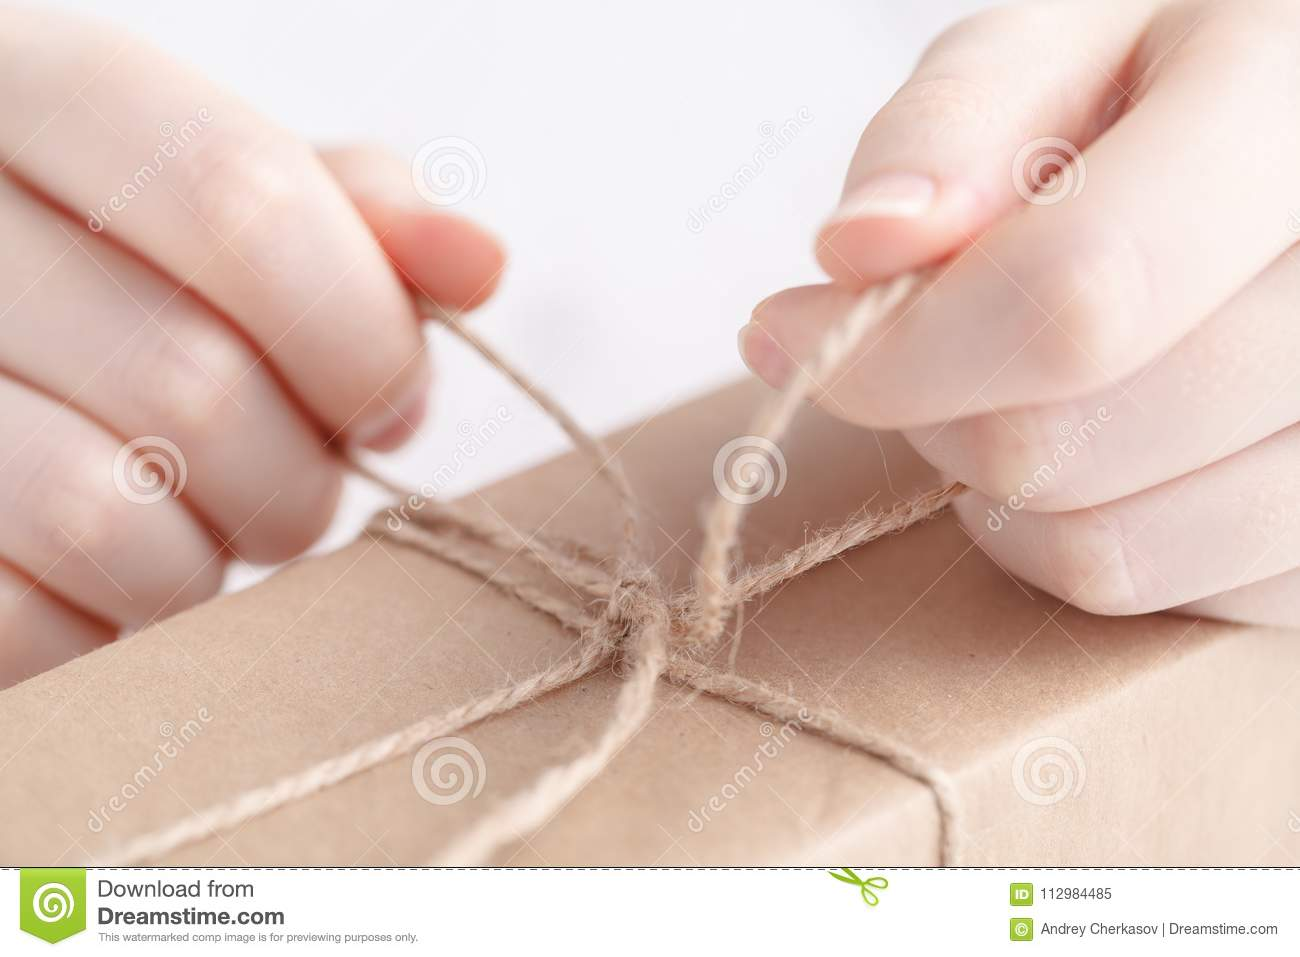 Packing gift in craft papper with twine